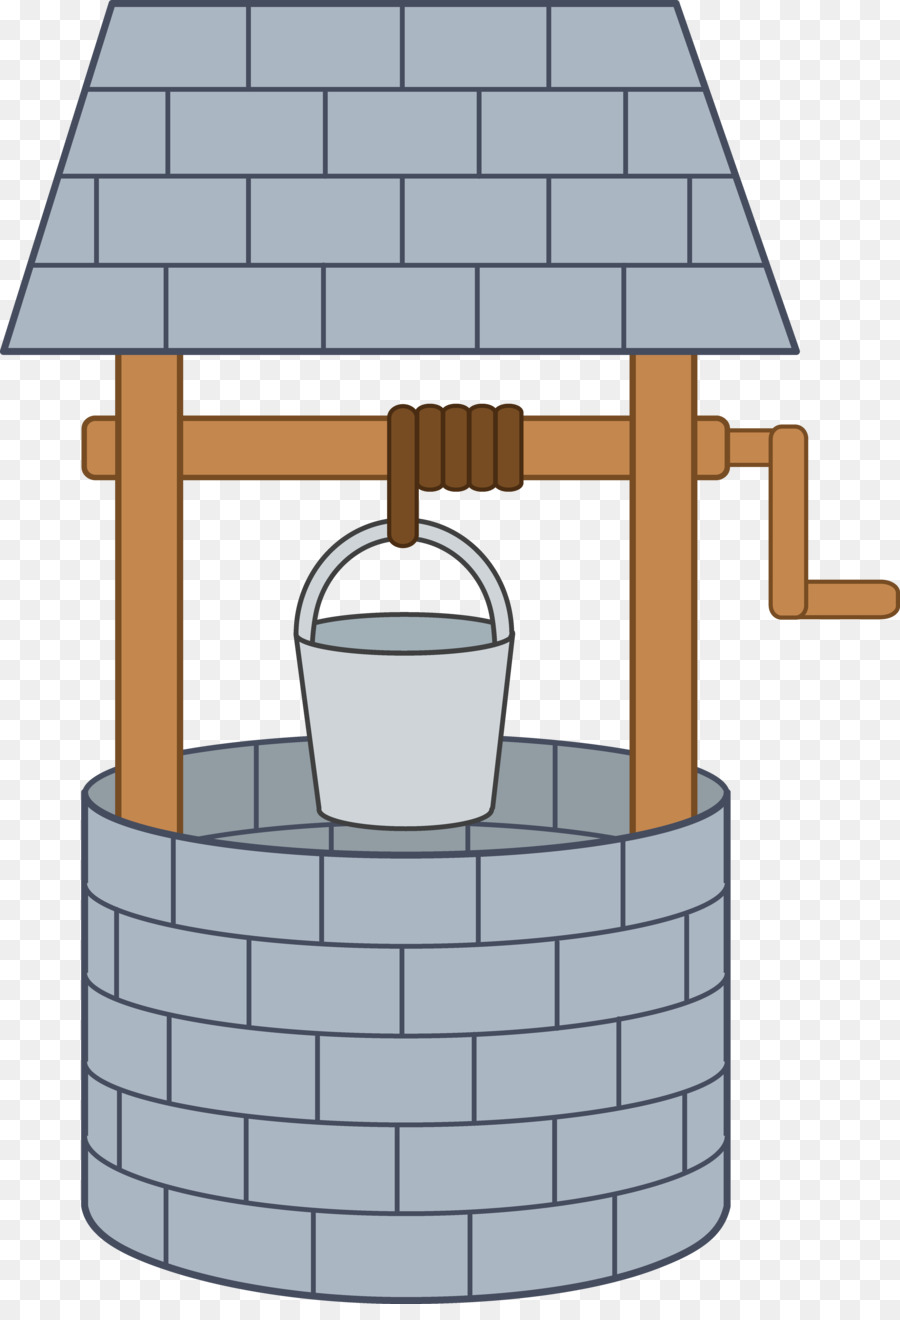 Well clipart pictures picture royalty free Wishing well clipart 1 » Clipart Station picture royalty free